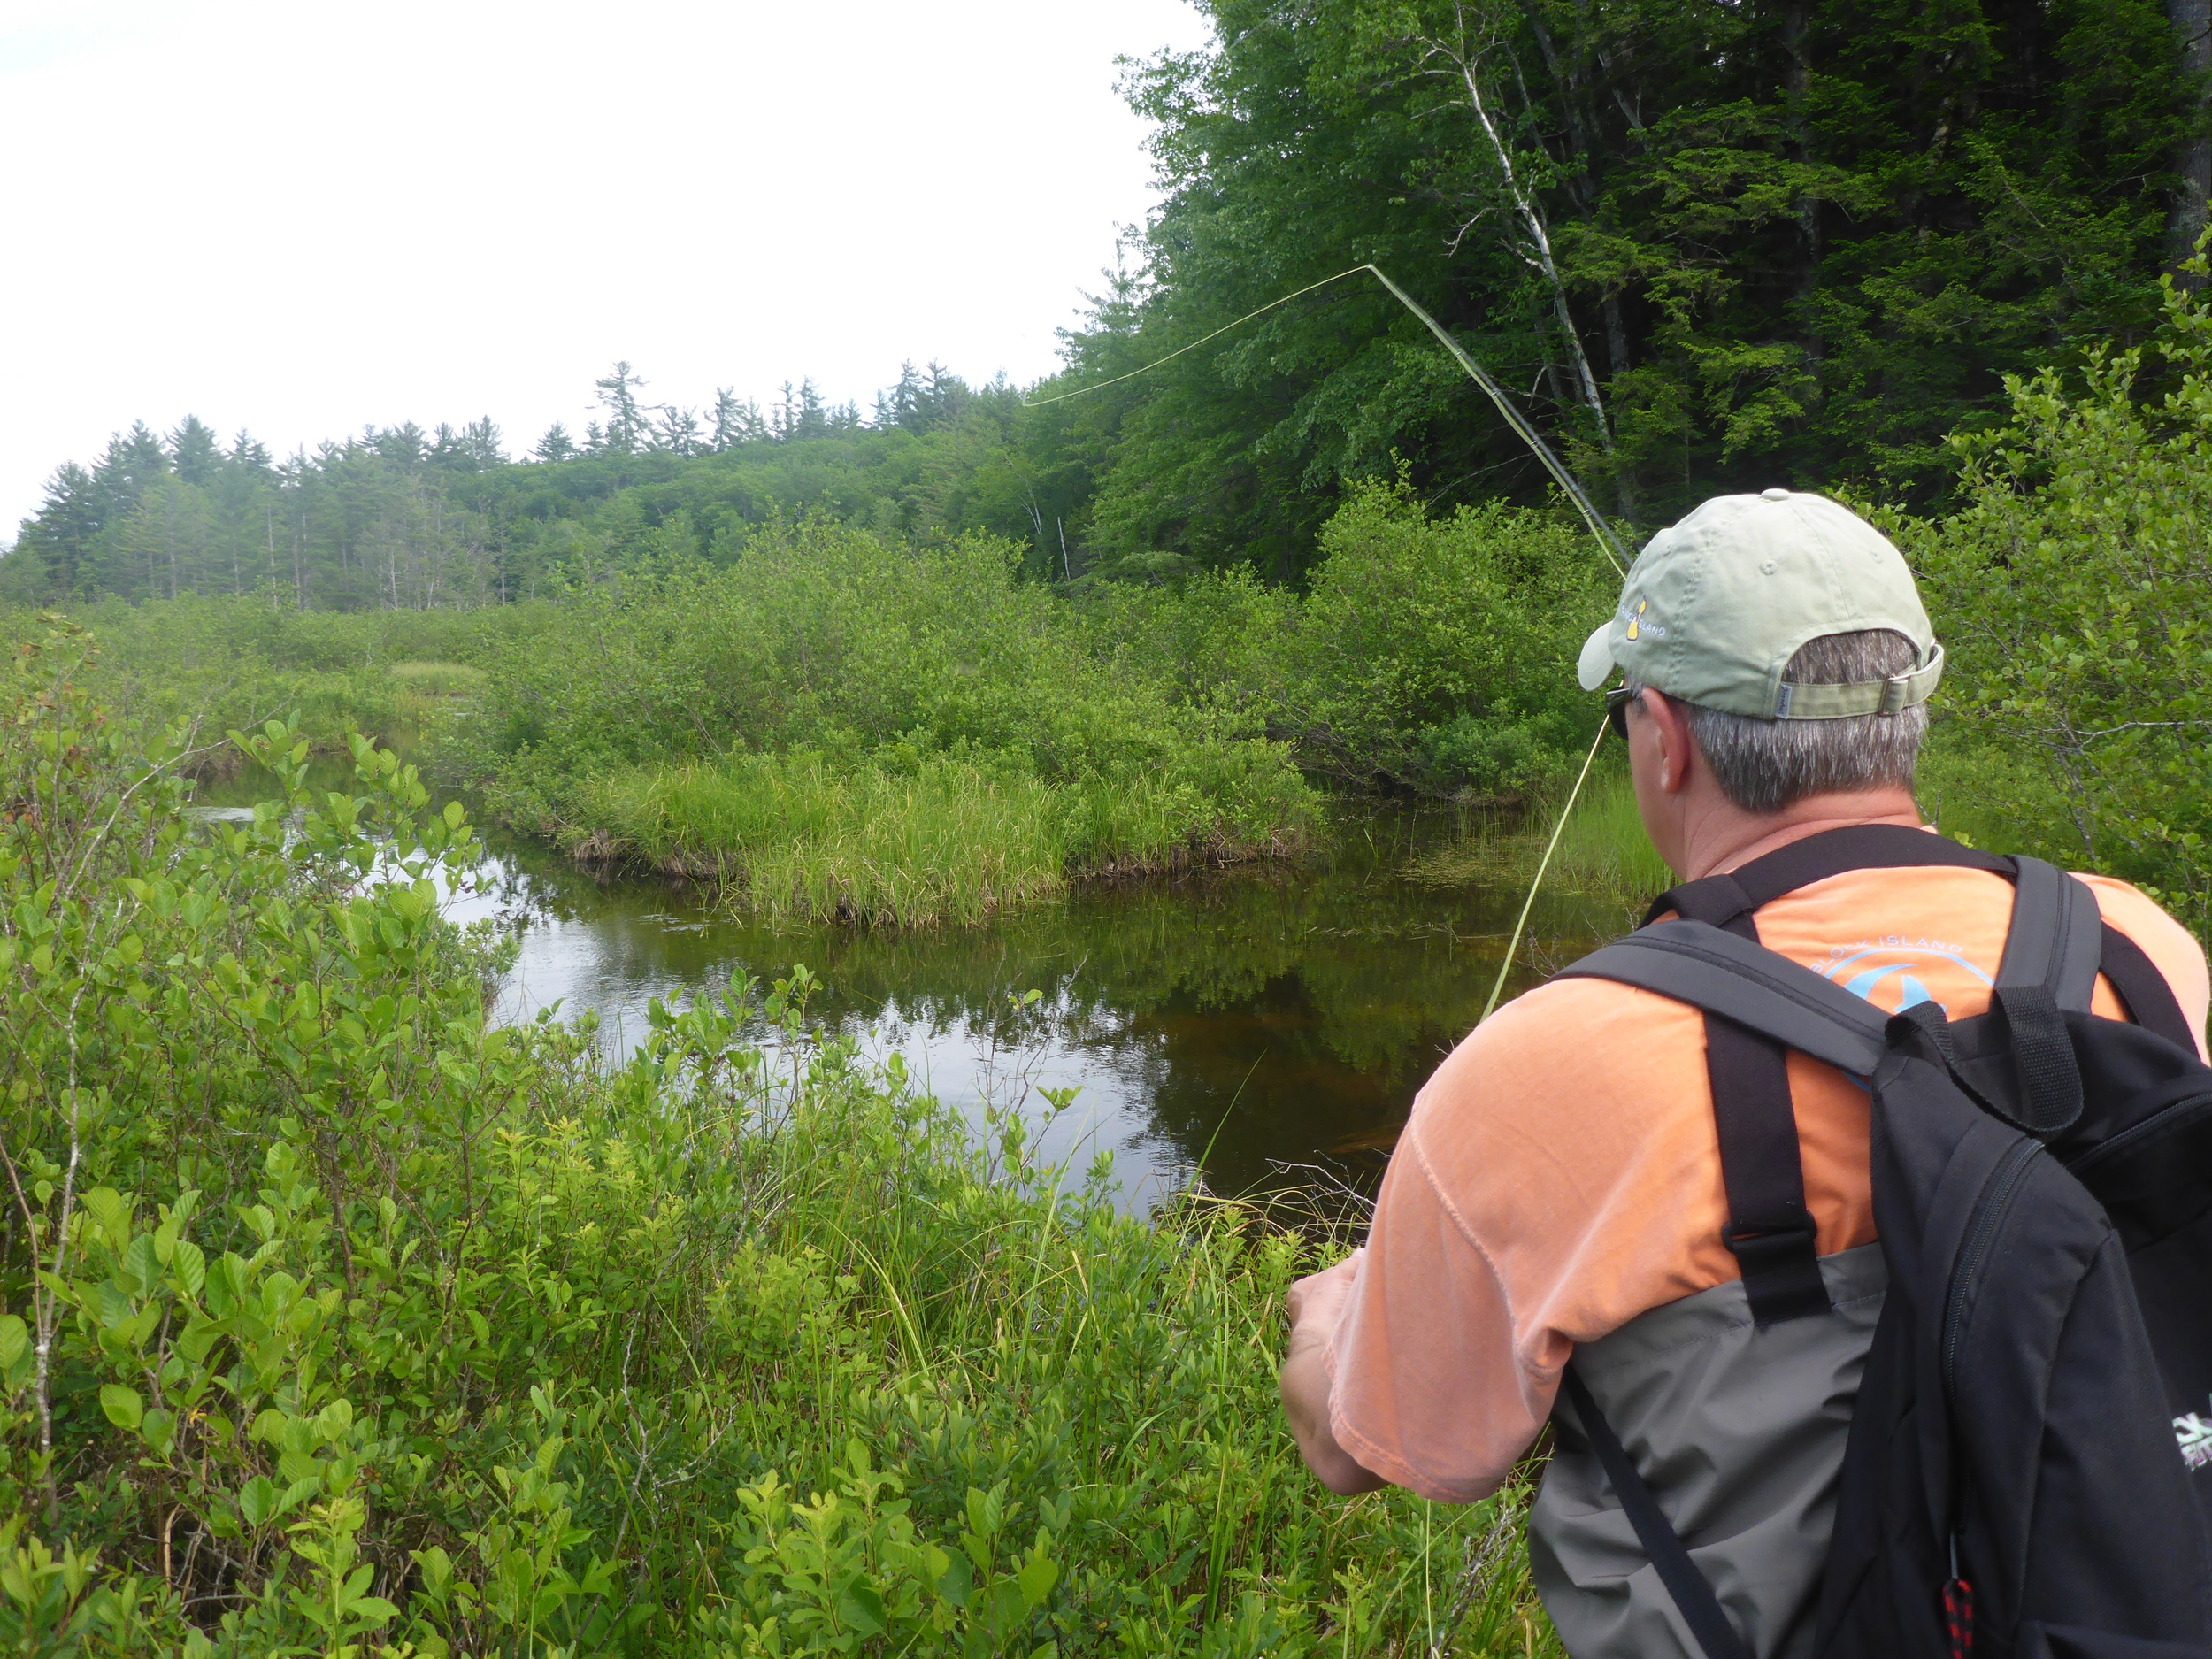 Mike Meller casting to rising wild brook trout.